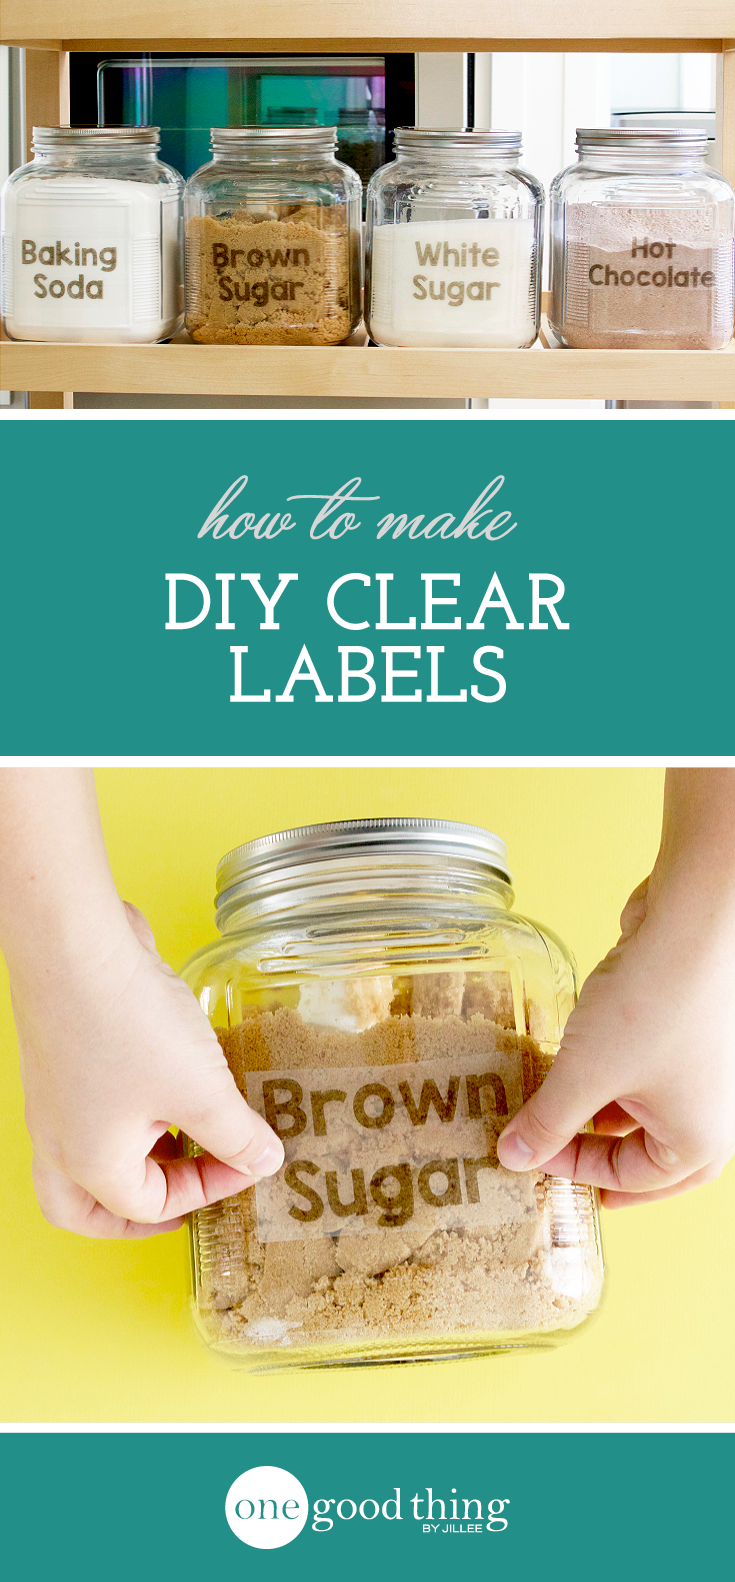 Learn how to use your inket printer and some packing tape to make your own clear custom labels you wont believe how easy it is